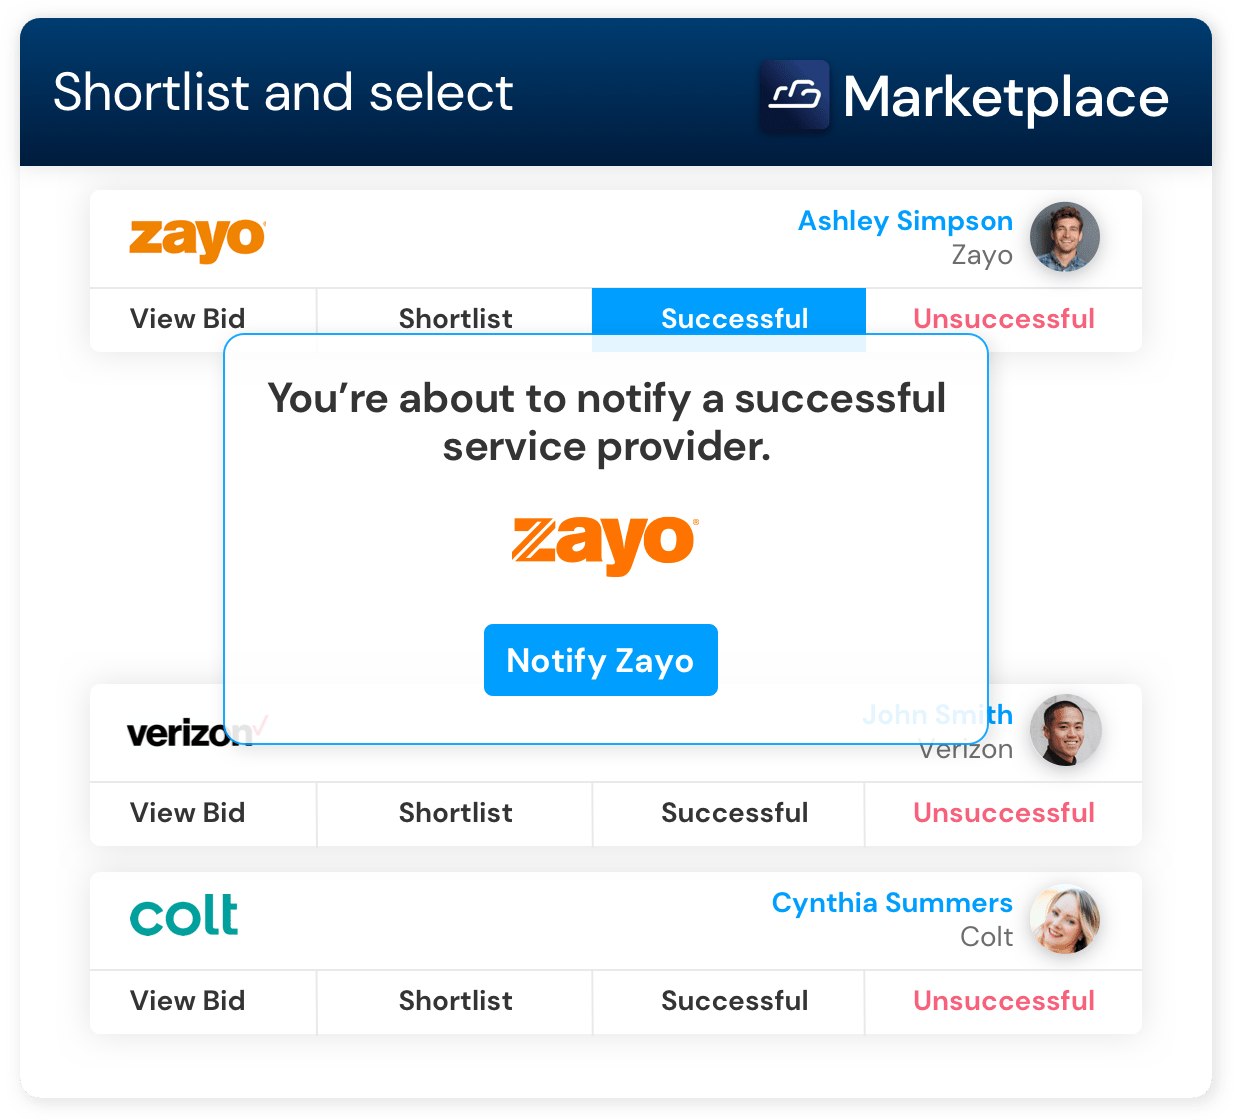 Cloudscene Marketplace Shortlist and Select process with which a pop up resulting stating you're about to notify a successful service provider